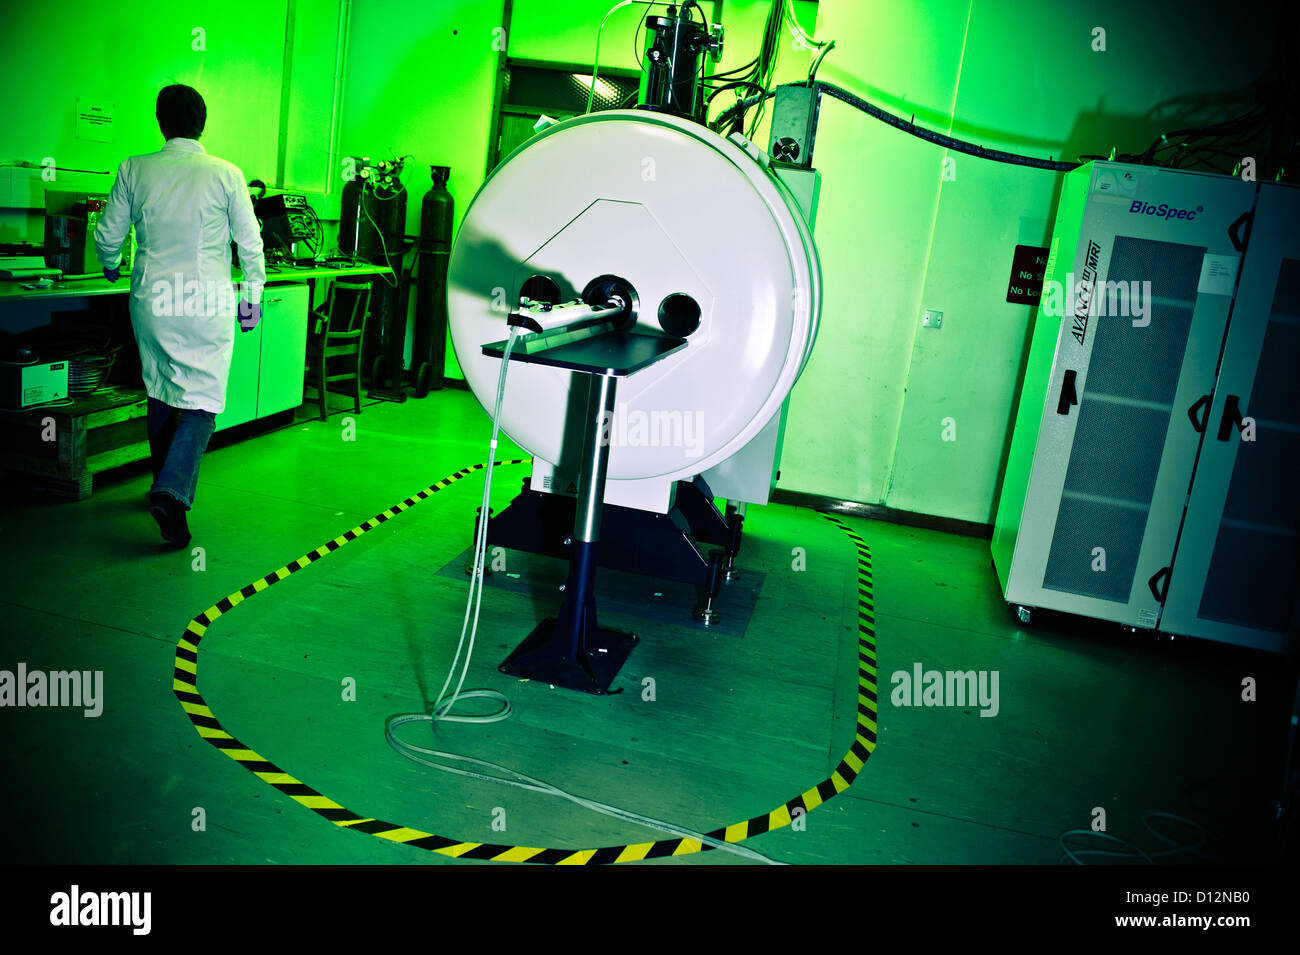 Technician or scientist in room with small bore Magnetic Resonance Imaging (MRI) scanner, in which small subjects - Stock Image